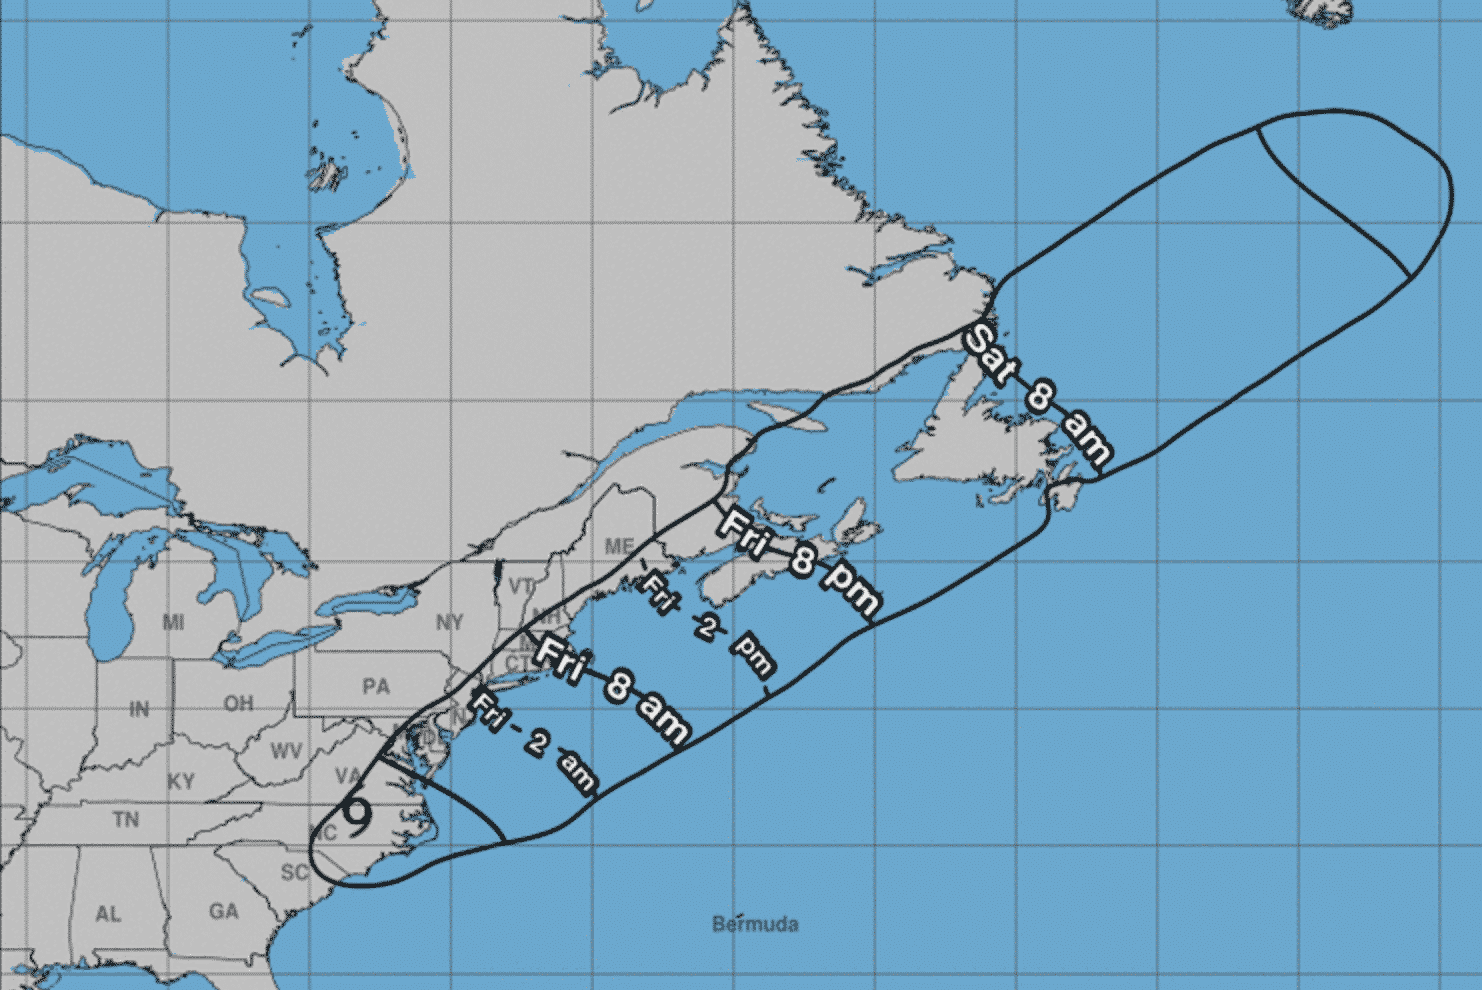 [CREDIT: NWS] The National Weather Service has issued a Tropical Storm Warning for the area, forecasting flooding rain, damaging wind, and a possible tornado. The first strong winds from the storm are expected to arrive at 8 a.m. here.